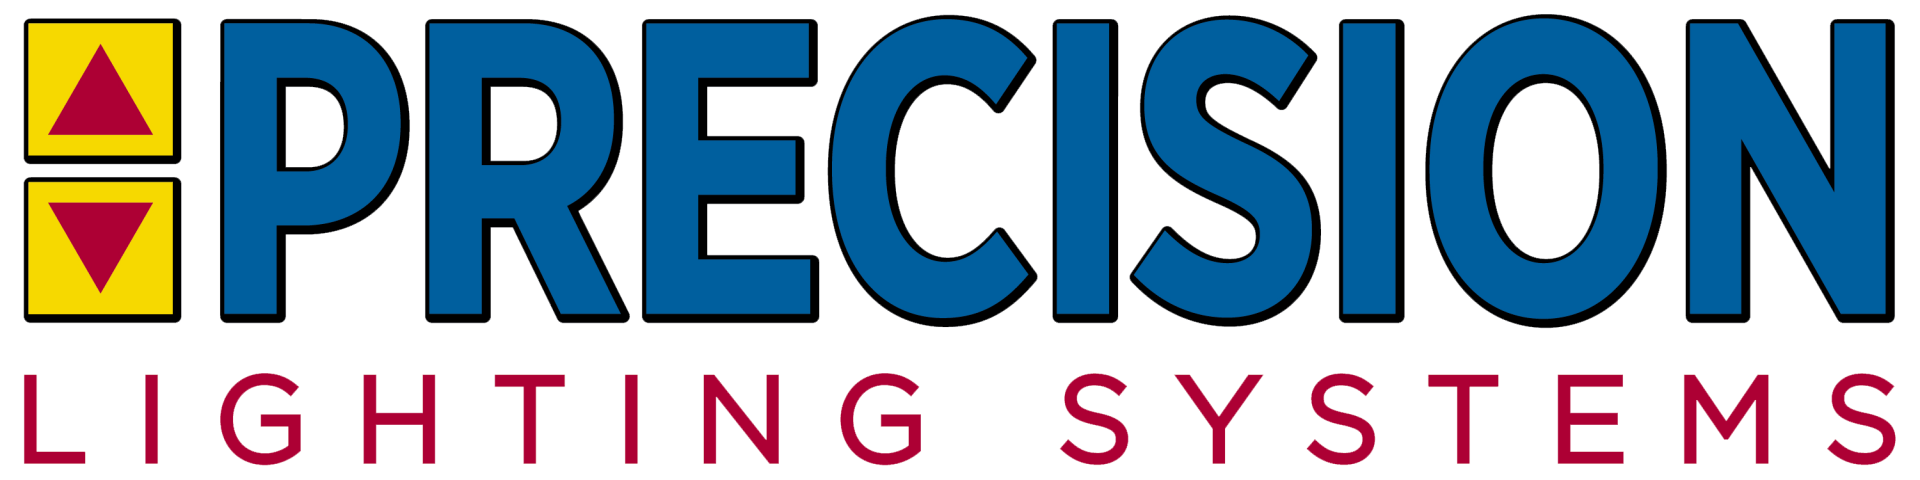 Distributors | Precision Lighting Systems, Inc  | Hot Springs, Arkansas